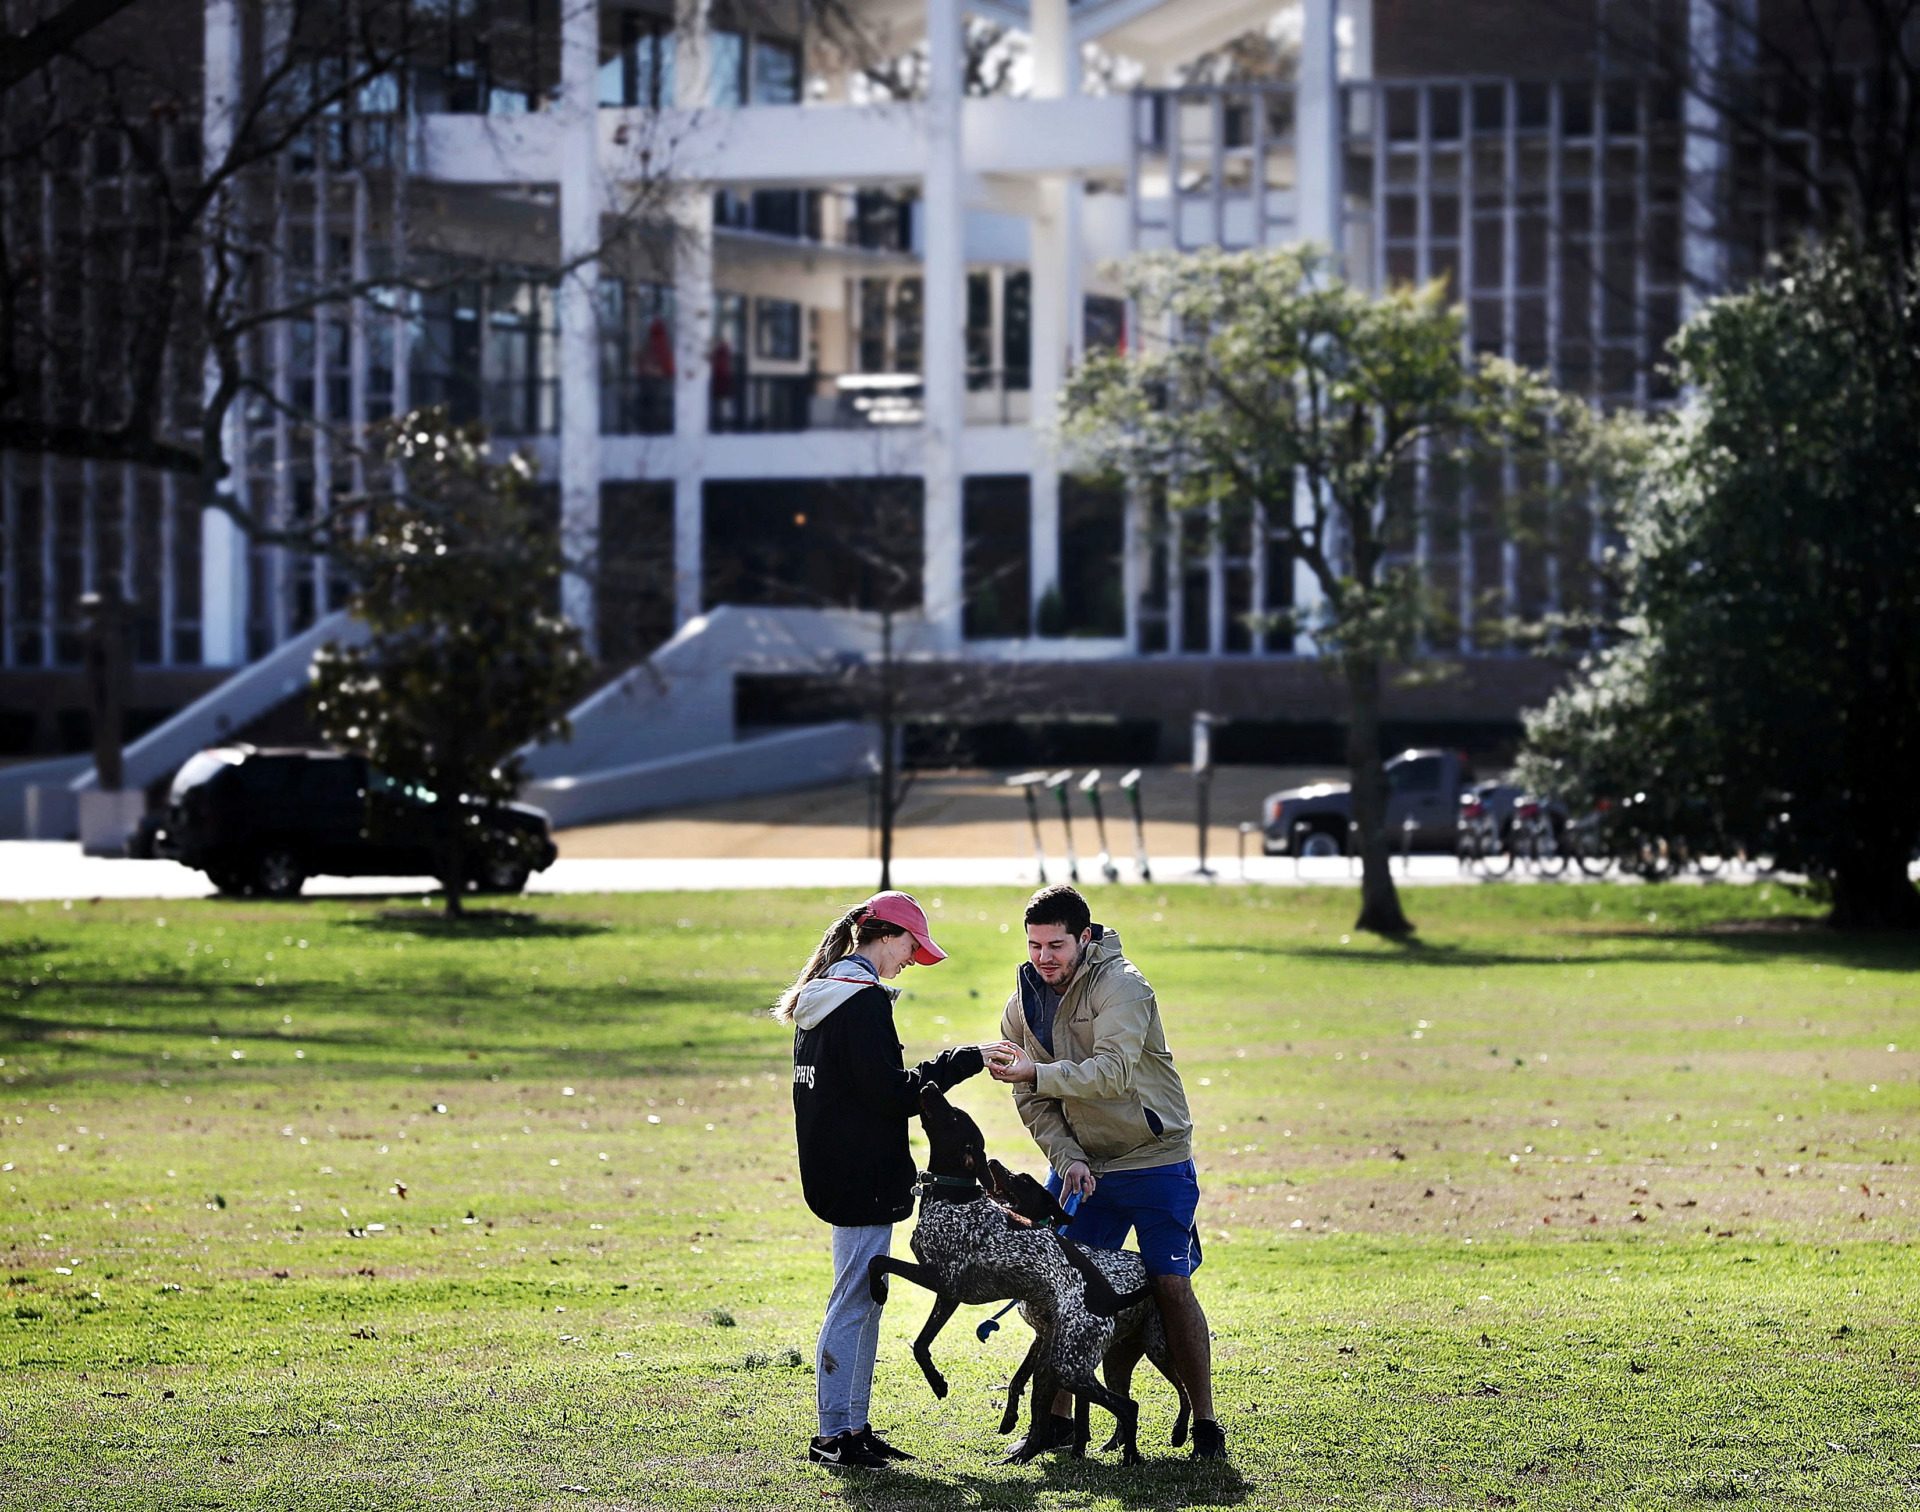 "<strong>Thomas and Bailey McLemore play with their dogs Milo and Jeb on the Greensward on Feb. 12, 2019, near Rust Hall in Overton Park. A group called Arrow at Overton wants to turn Rust Hall into space for ""creatives'' and has started signing up artists who want to lease studio space.</strong> (Jim Weber/Daily Memphian)"